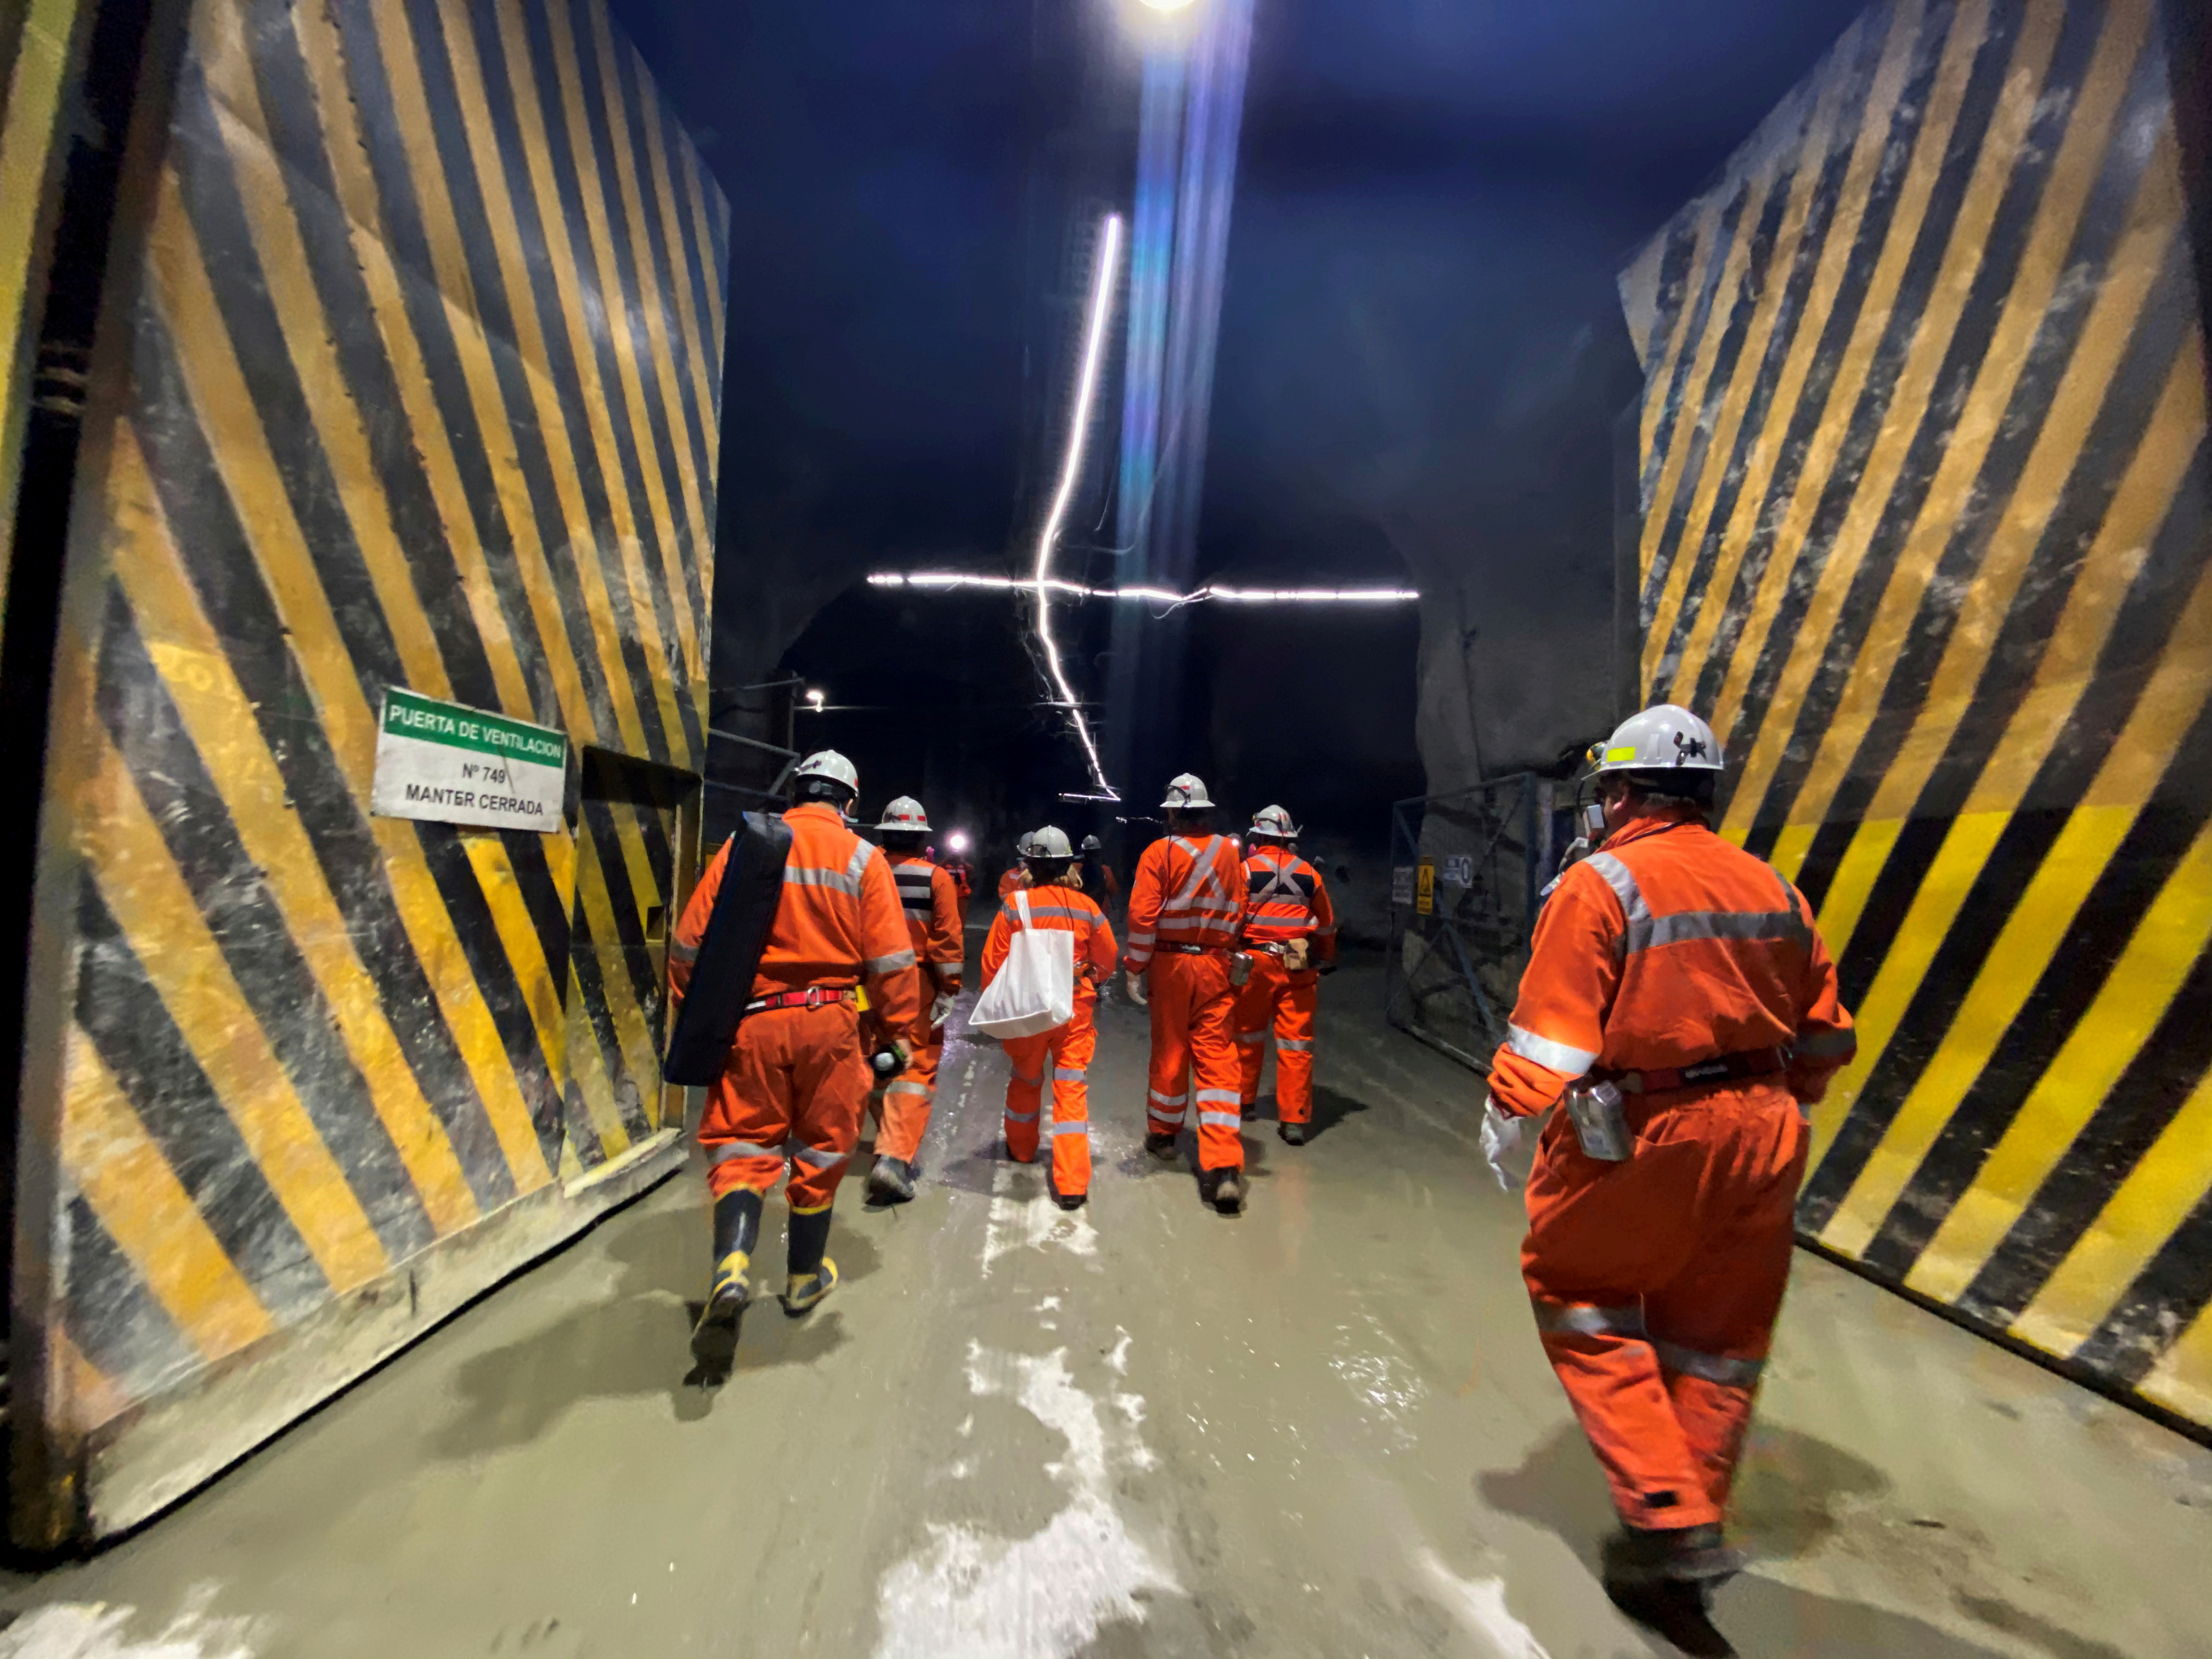 An industry tour group walks inside the Codelco El Teniente copper mine, the world's largest underground copper mine near Machali area, Rancagua, Chile October 15, 2020.